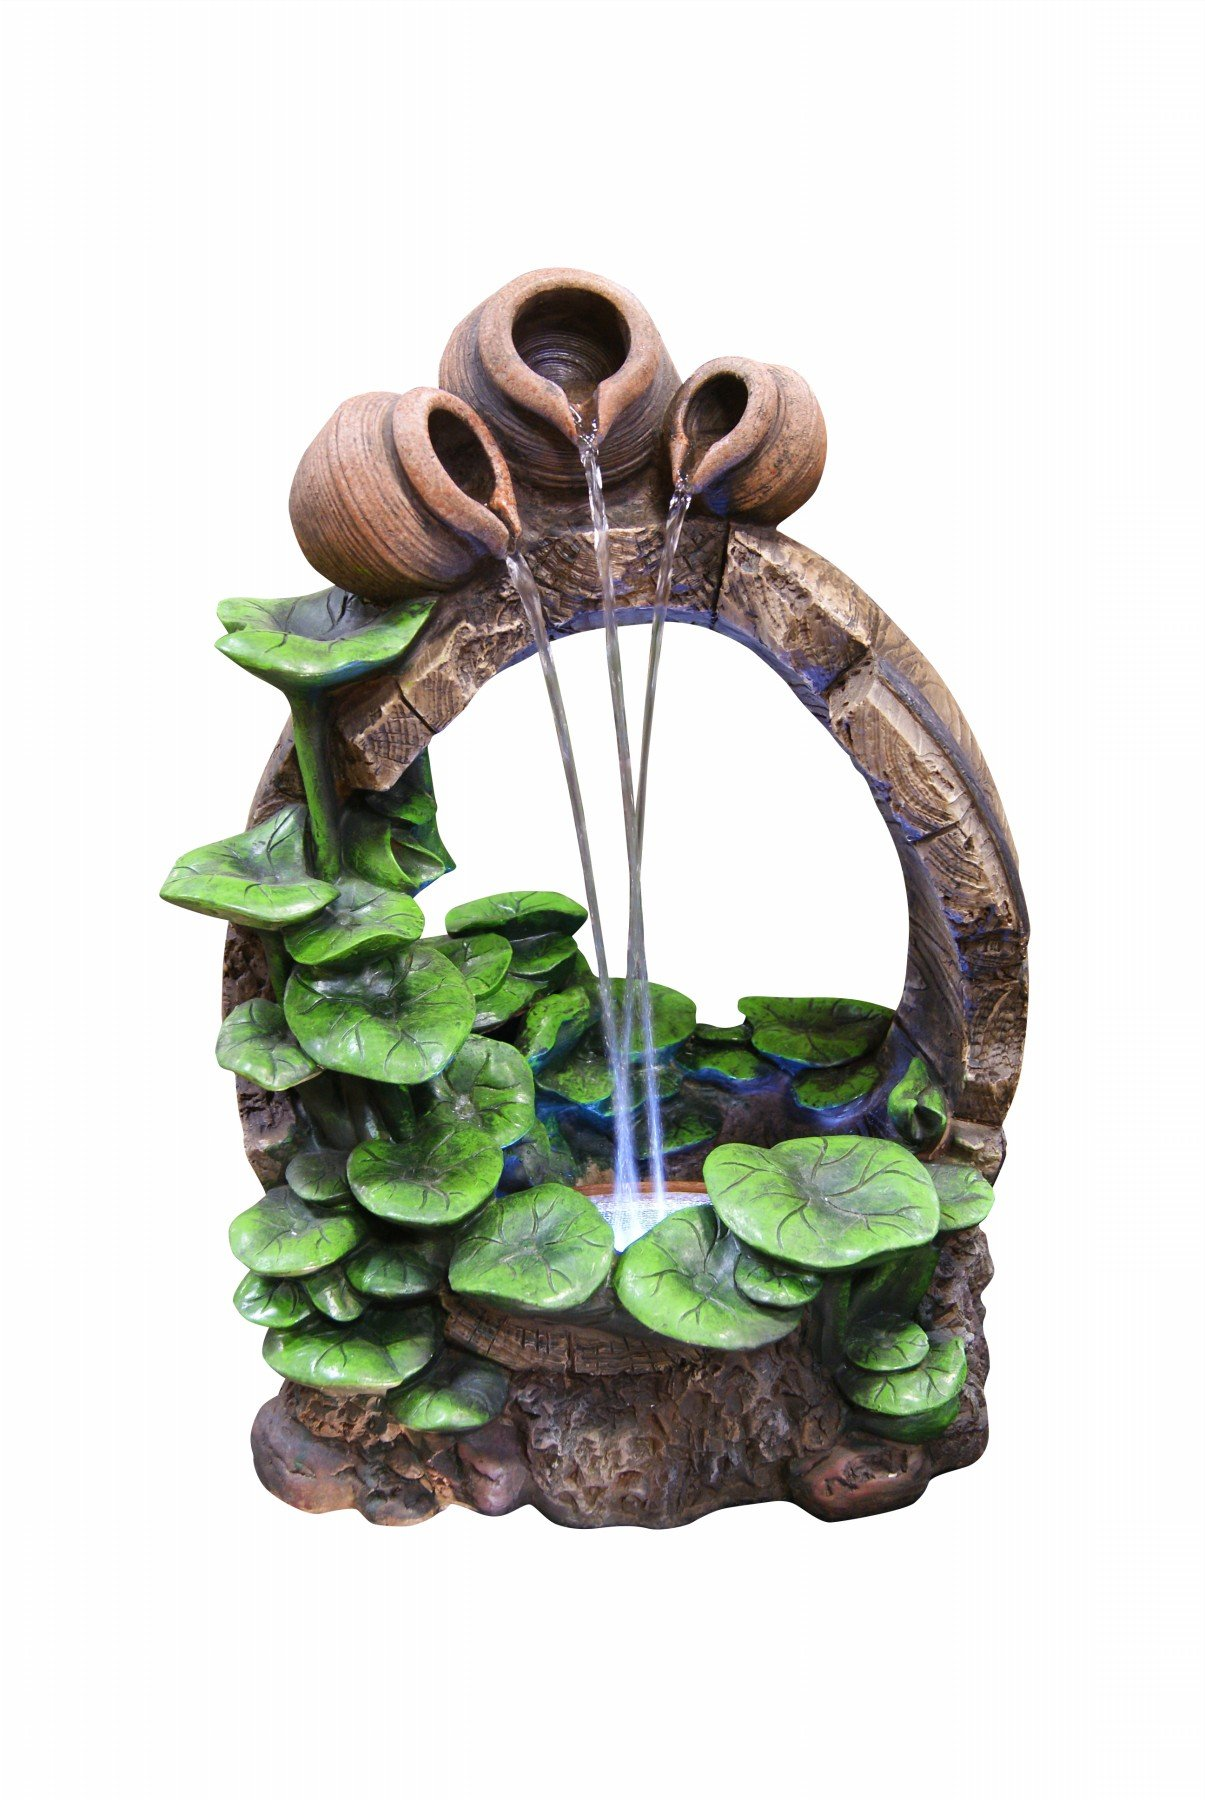 "Alpine WIN854S Barrel Pot Cascading Fountain with LED Light, 22"", Beige - Made of Fiberglass Skillfully crafted to be balanced and durable Pump and all necessary parts included - patio, fountains, outdoor-decor - 71PinNWv4gL -"